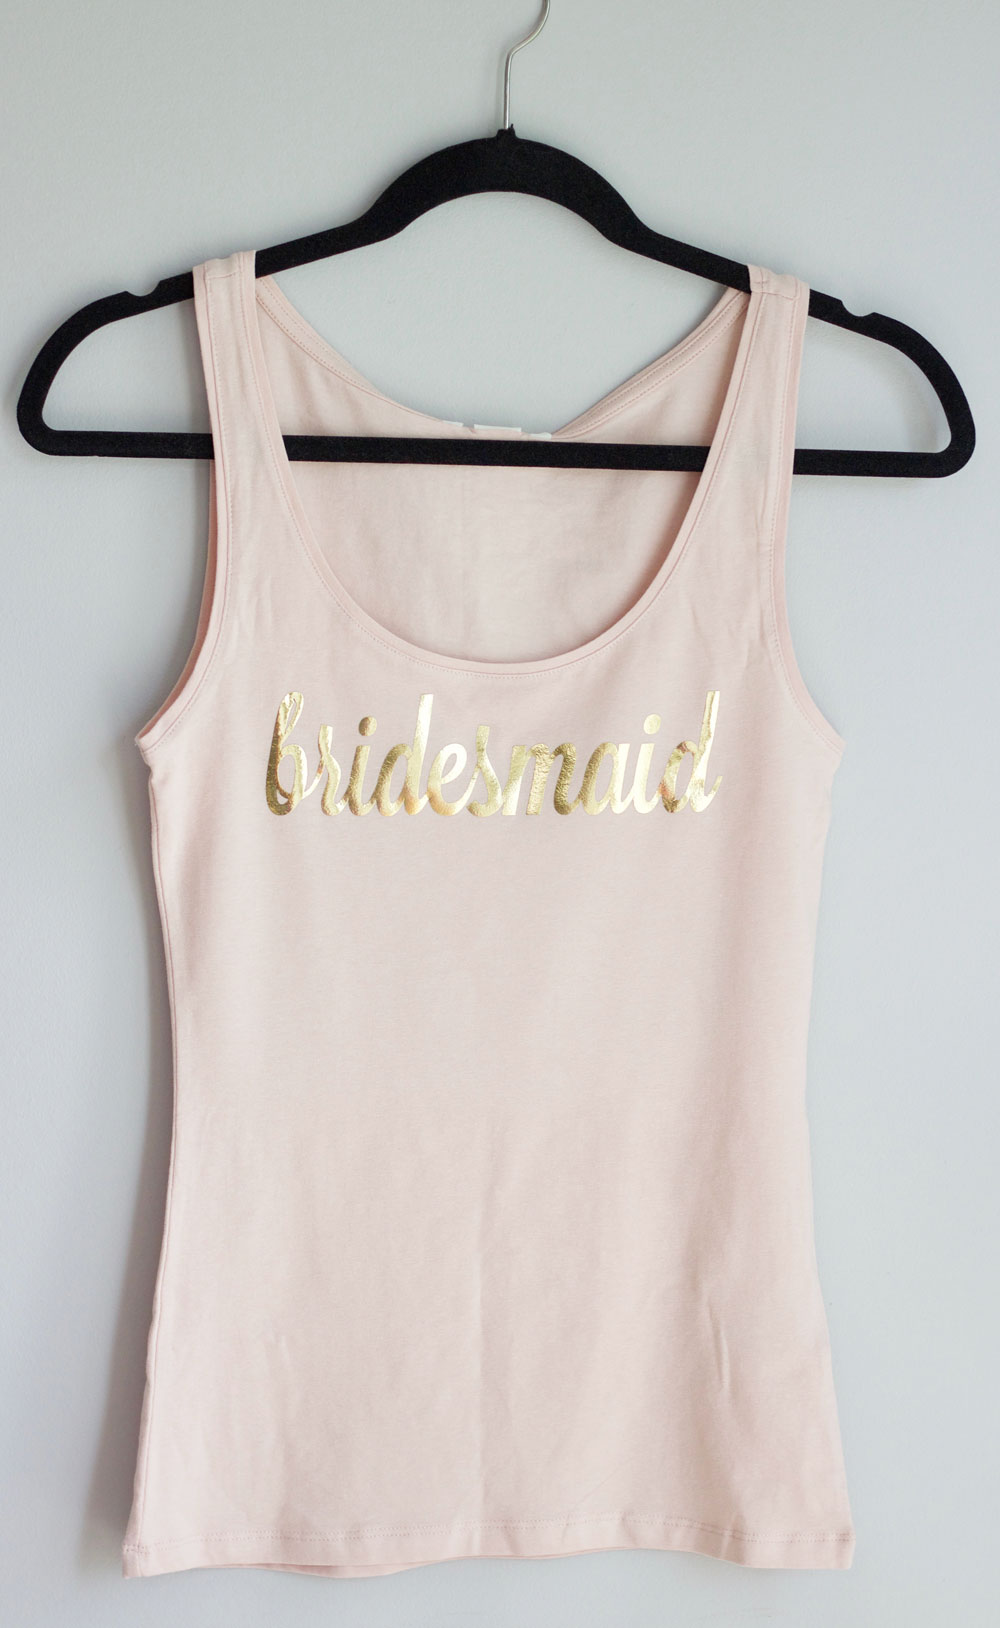 DIY bridesmaid tank top shirts blush and gold || Bridesmaids proposal || www.nikkisplate.com